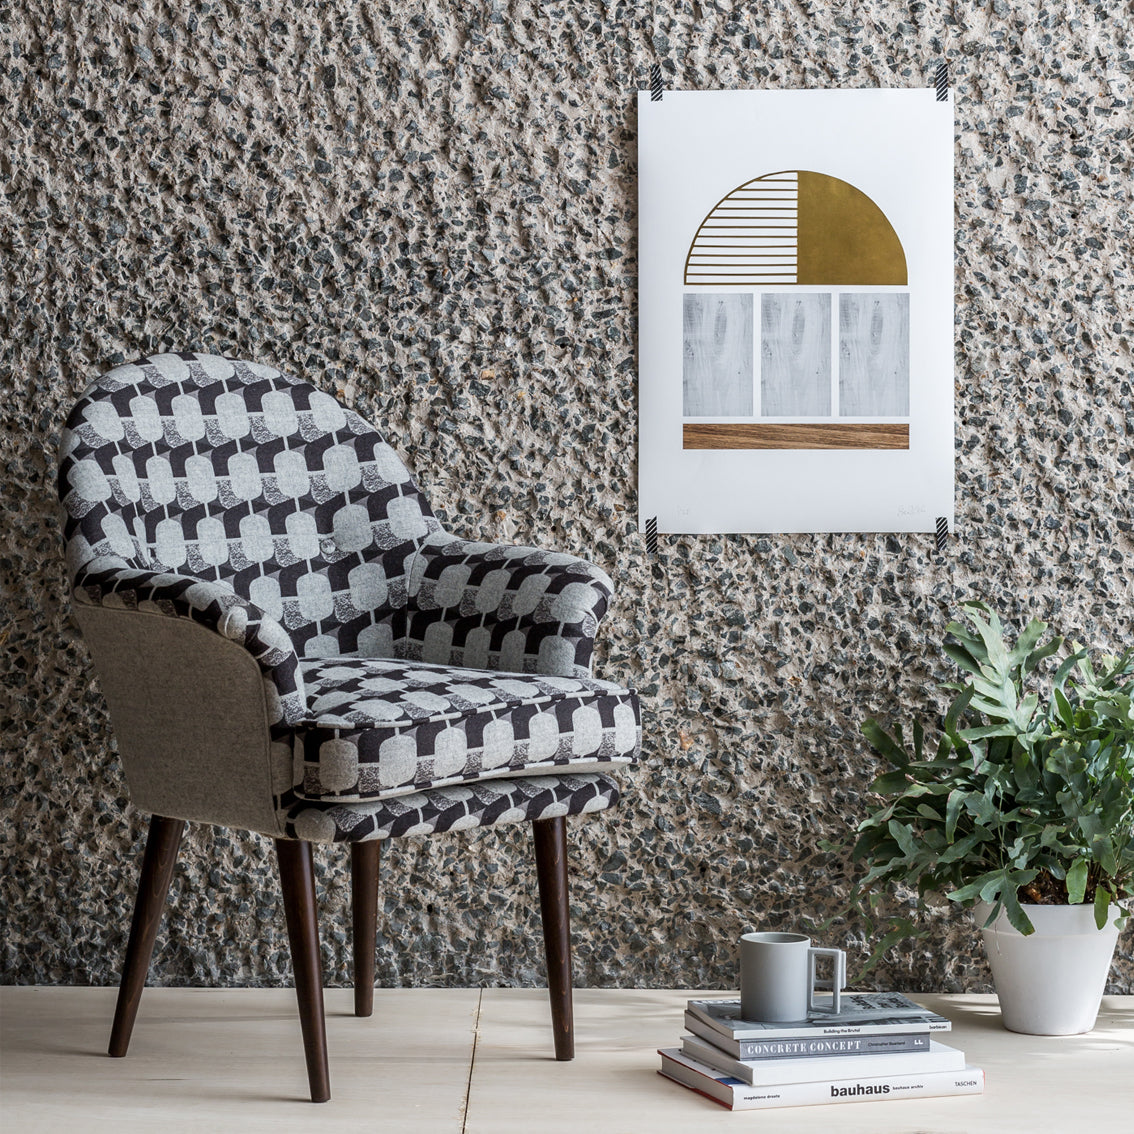 Limited Edition Lauderdale Chairs at the Barbican